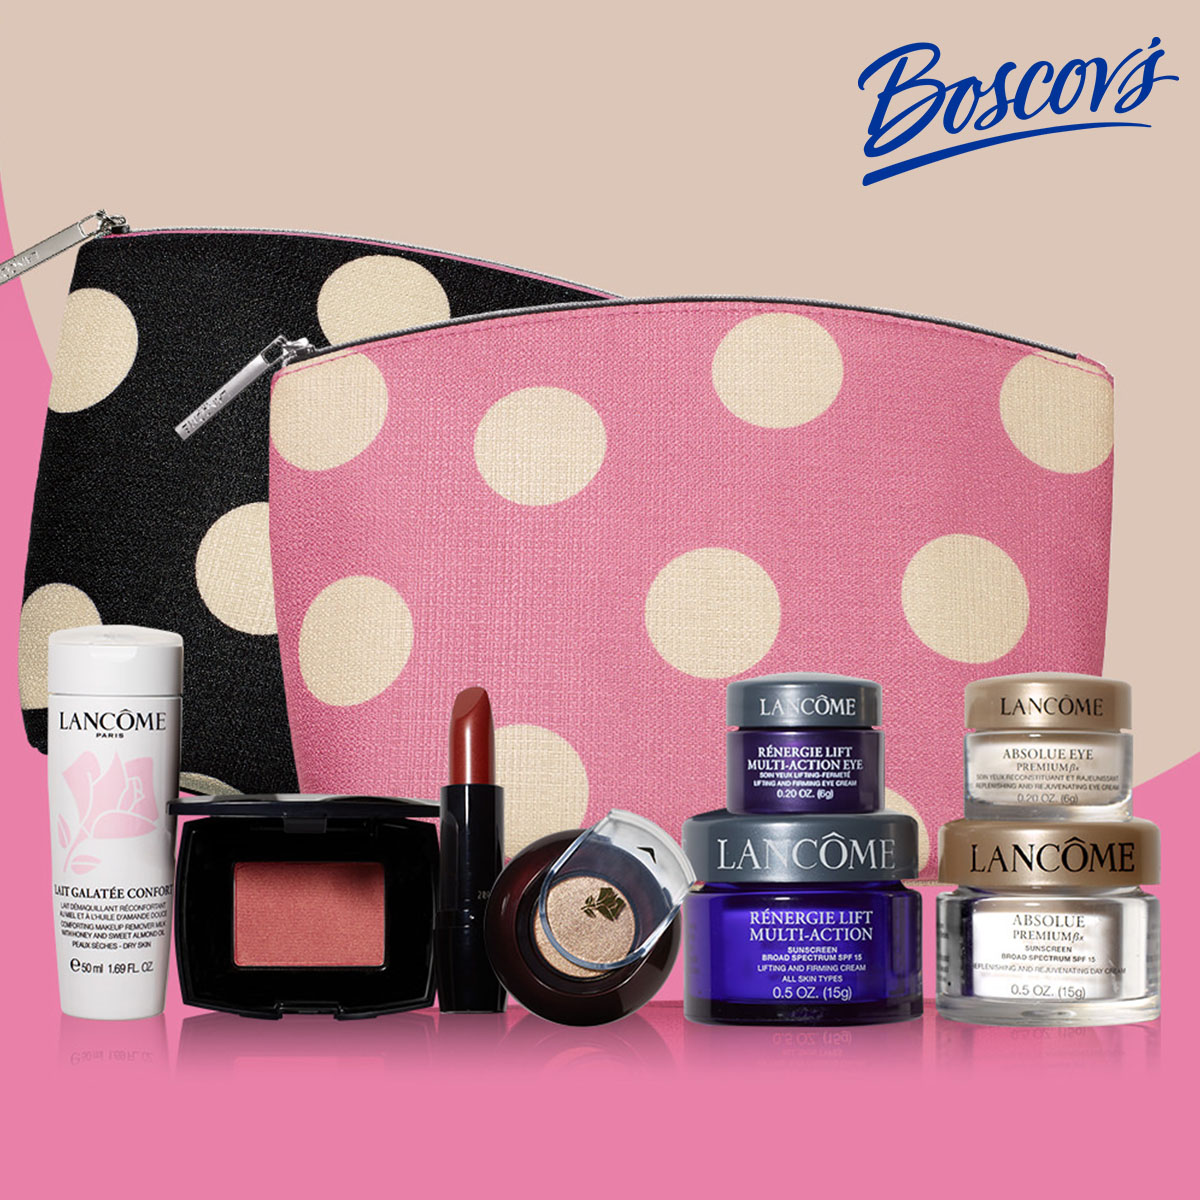 Boscov's Lancôme Gift with Purchase from Boscov's